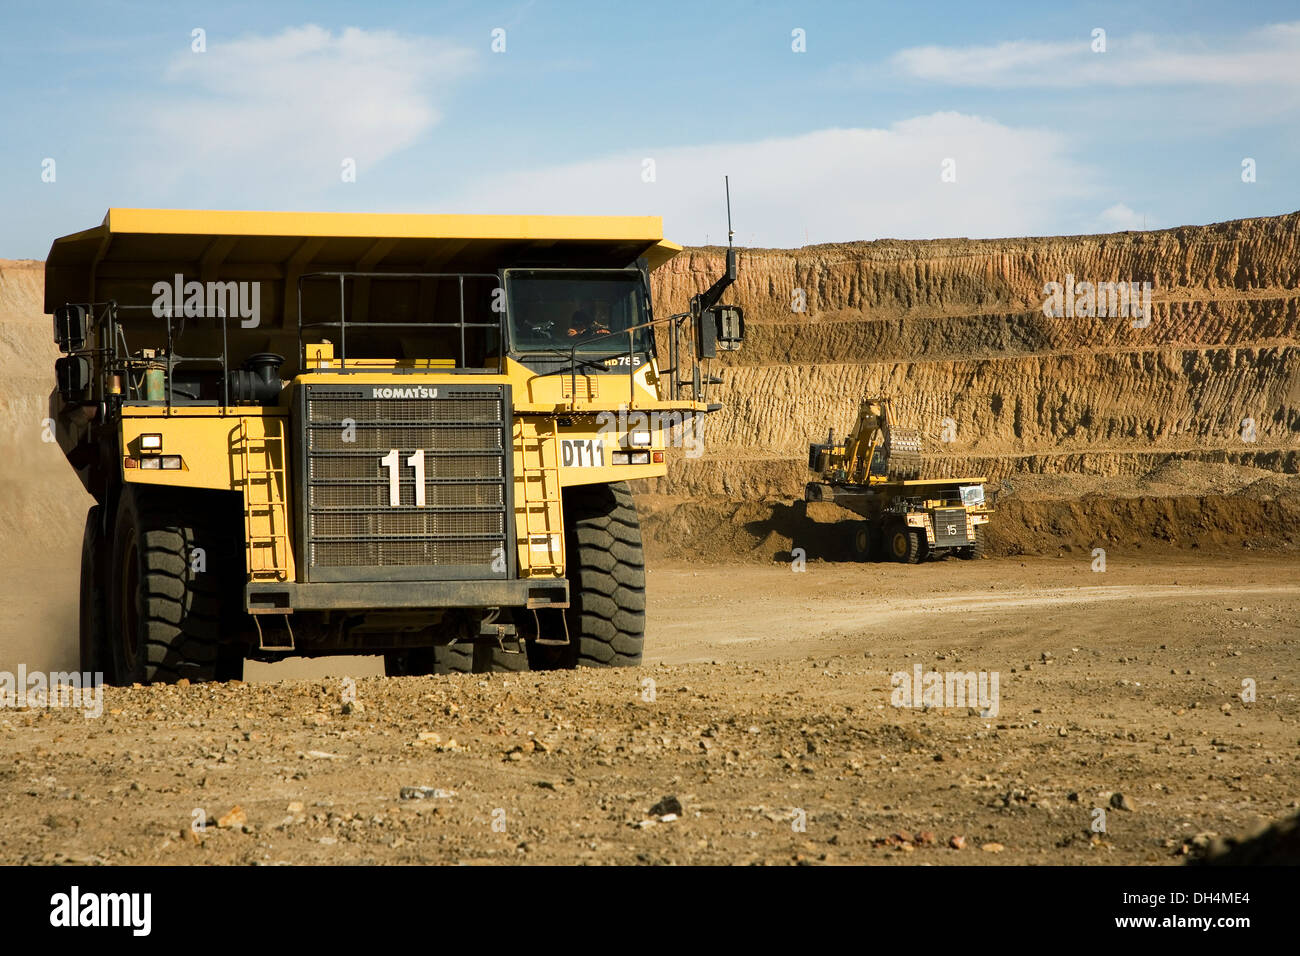 Gold mine operation in open cast surface pit with large haul truck leaving and excavators working behind, Mauritania, NW Africa - Stock Image